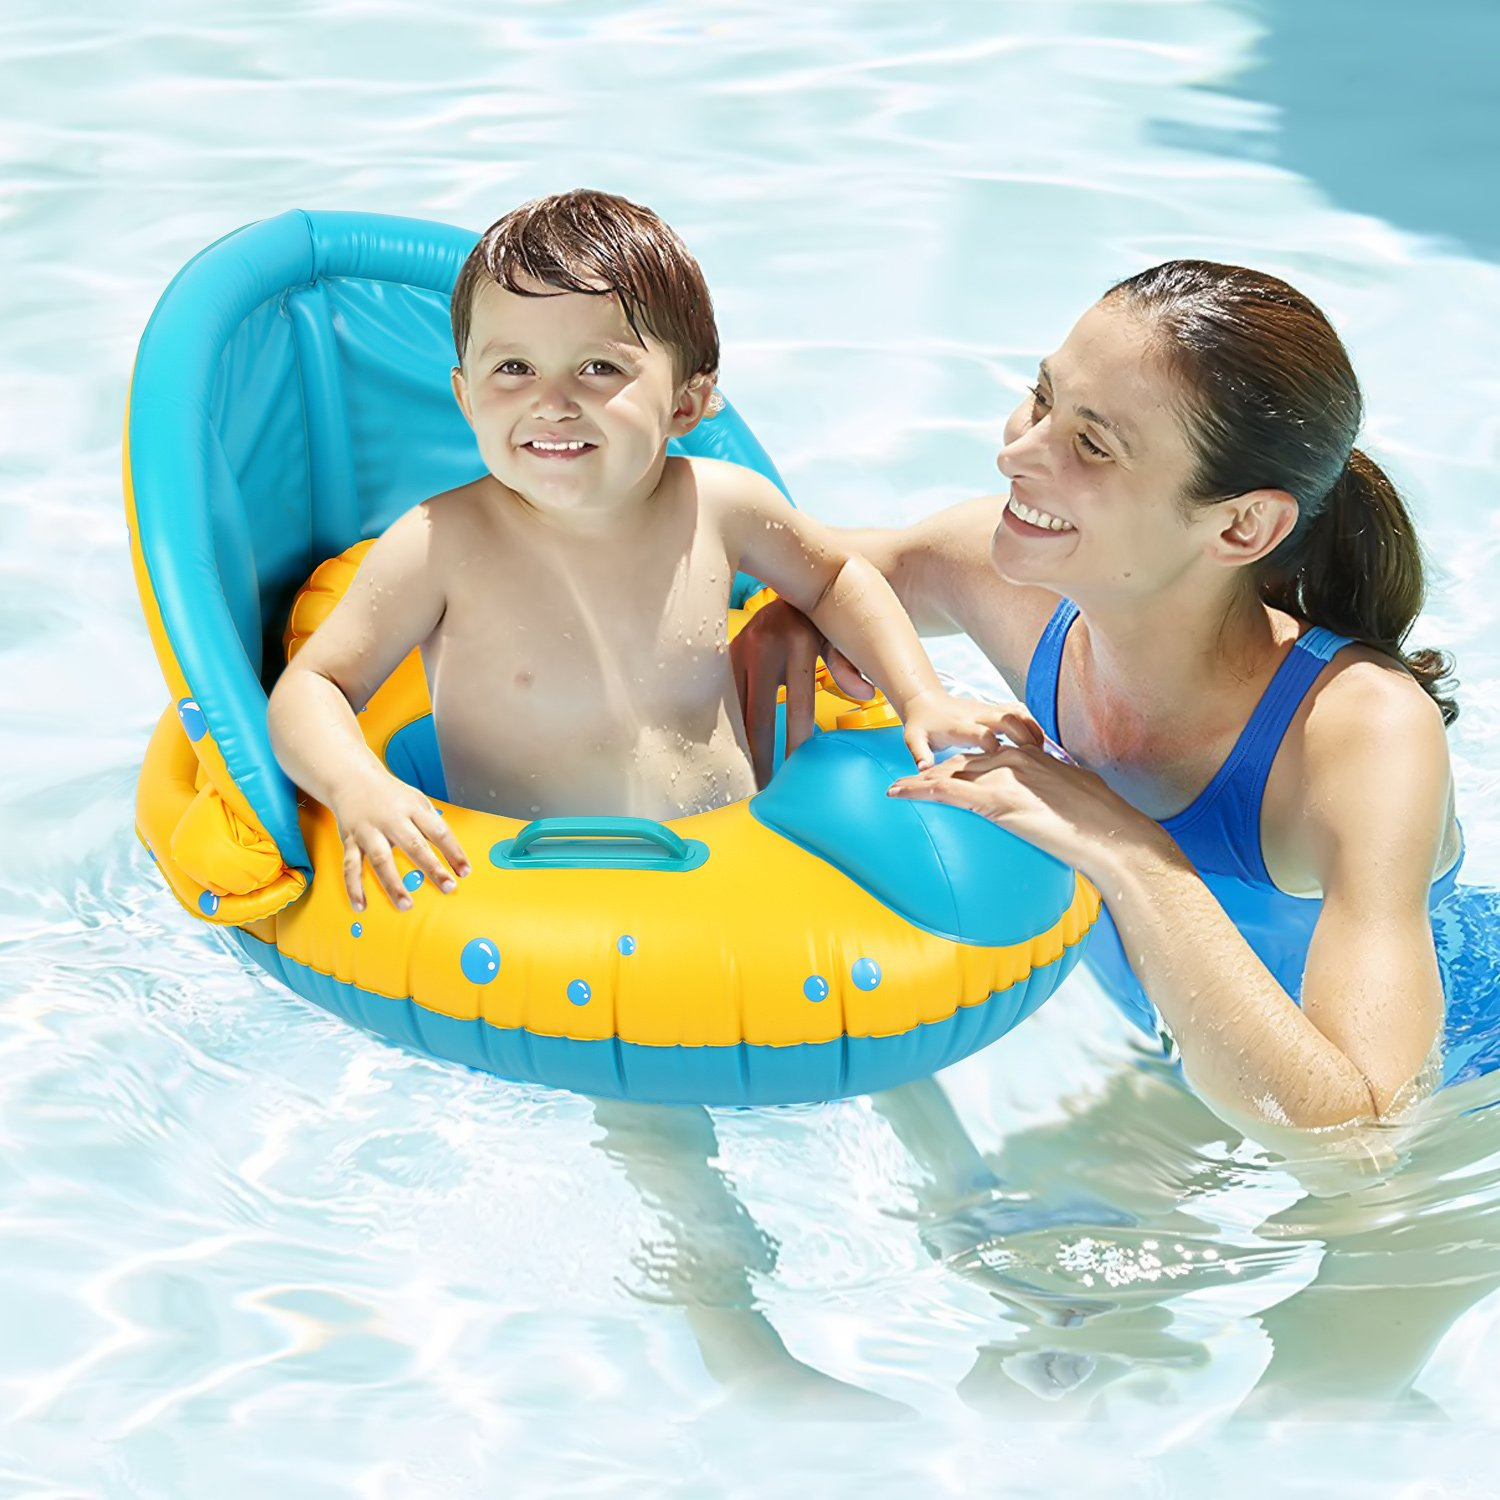 Peradix Infant Pool Float with Canopy Inflatable Baby Water Float Boat with Sunshade for Pool Swimming Ring Floater Raft Toys for Toddlers Kids by Peradix (Image #7)